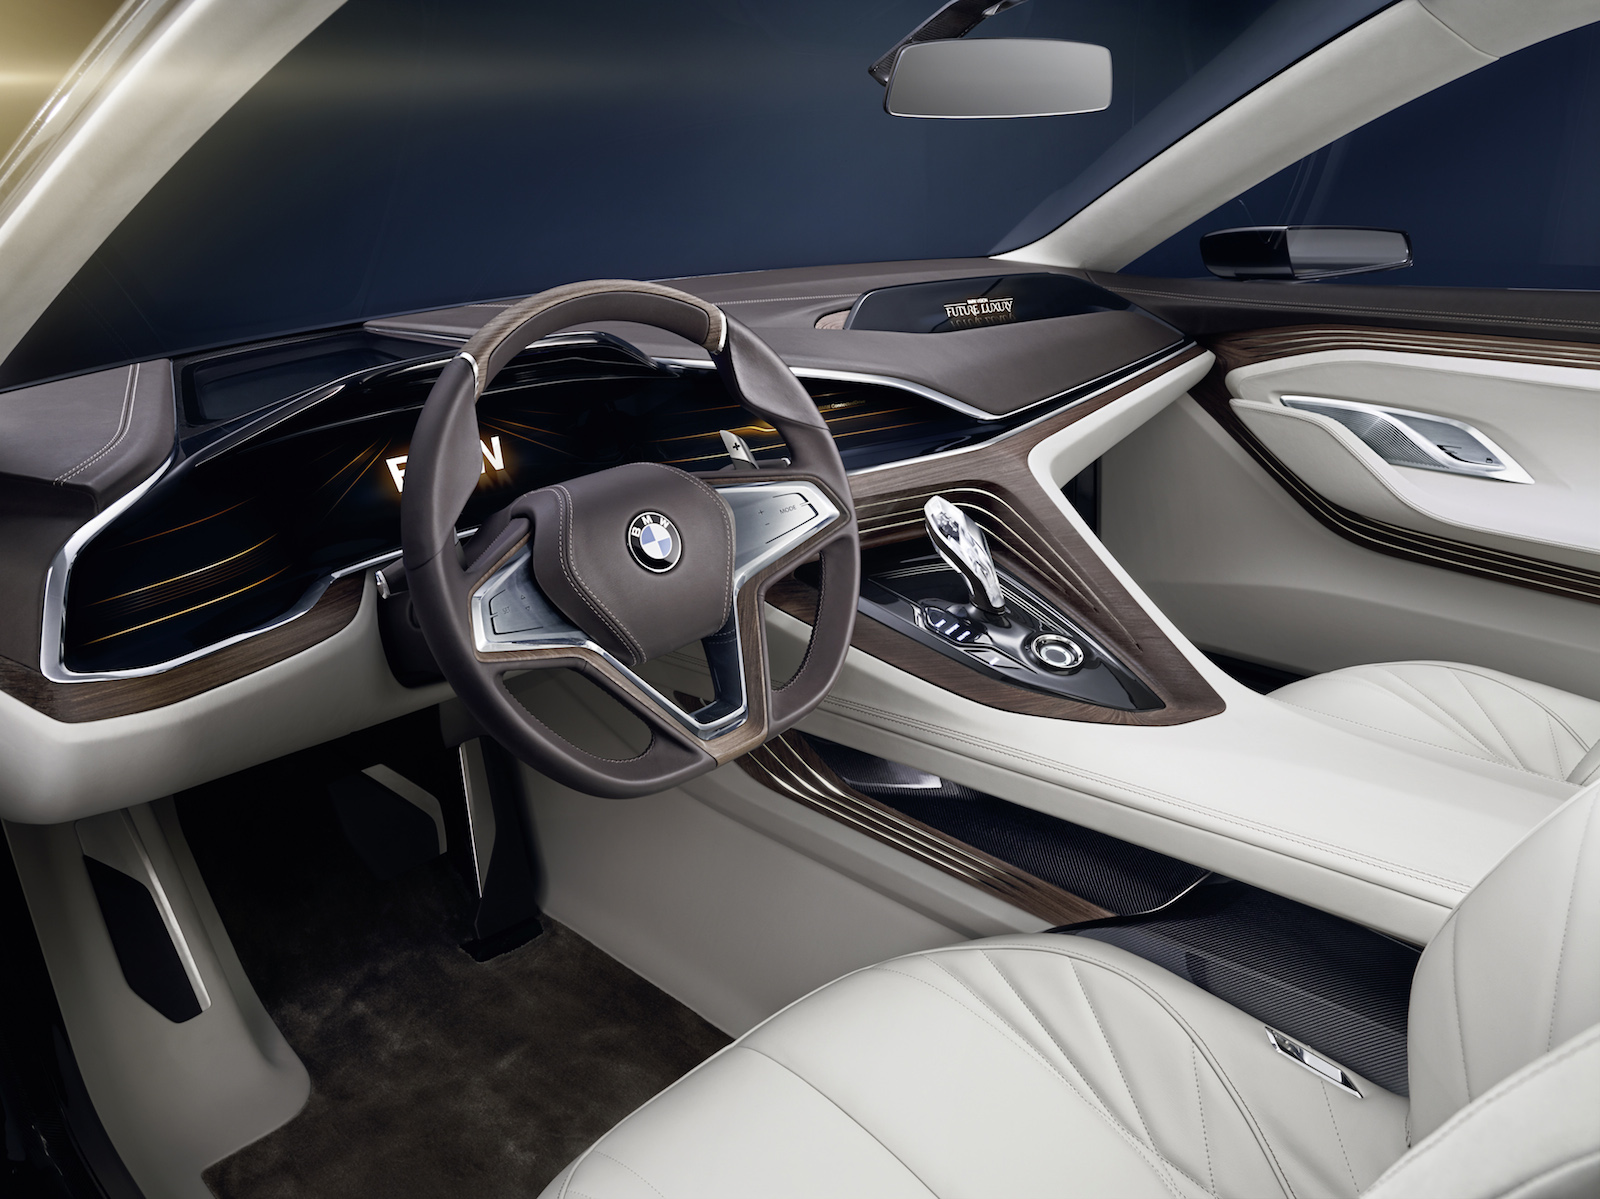 bmw-vision-future-luxury_100475102_h